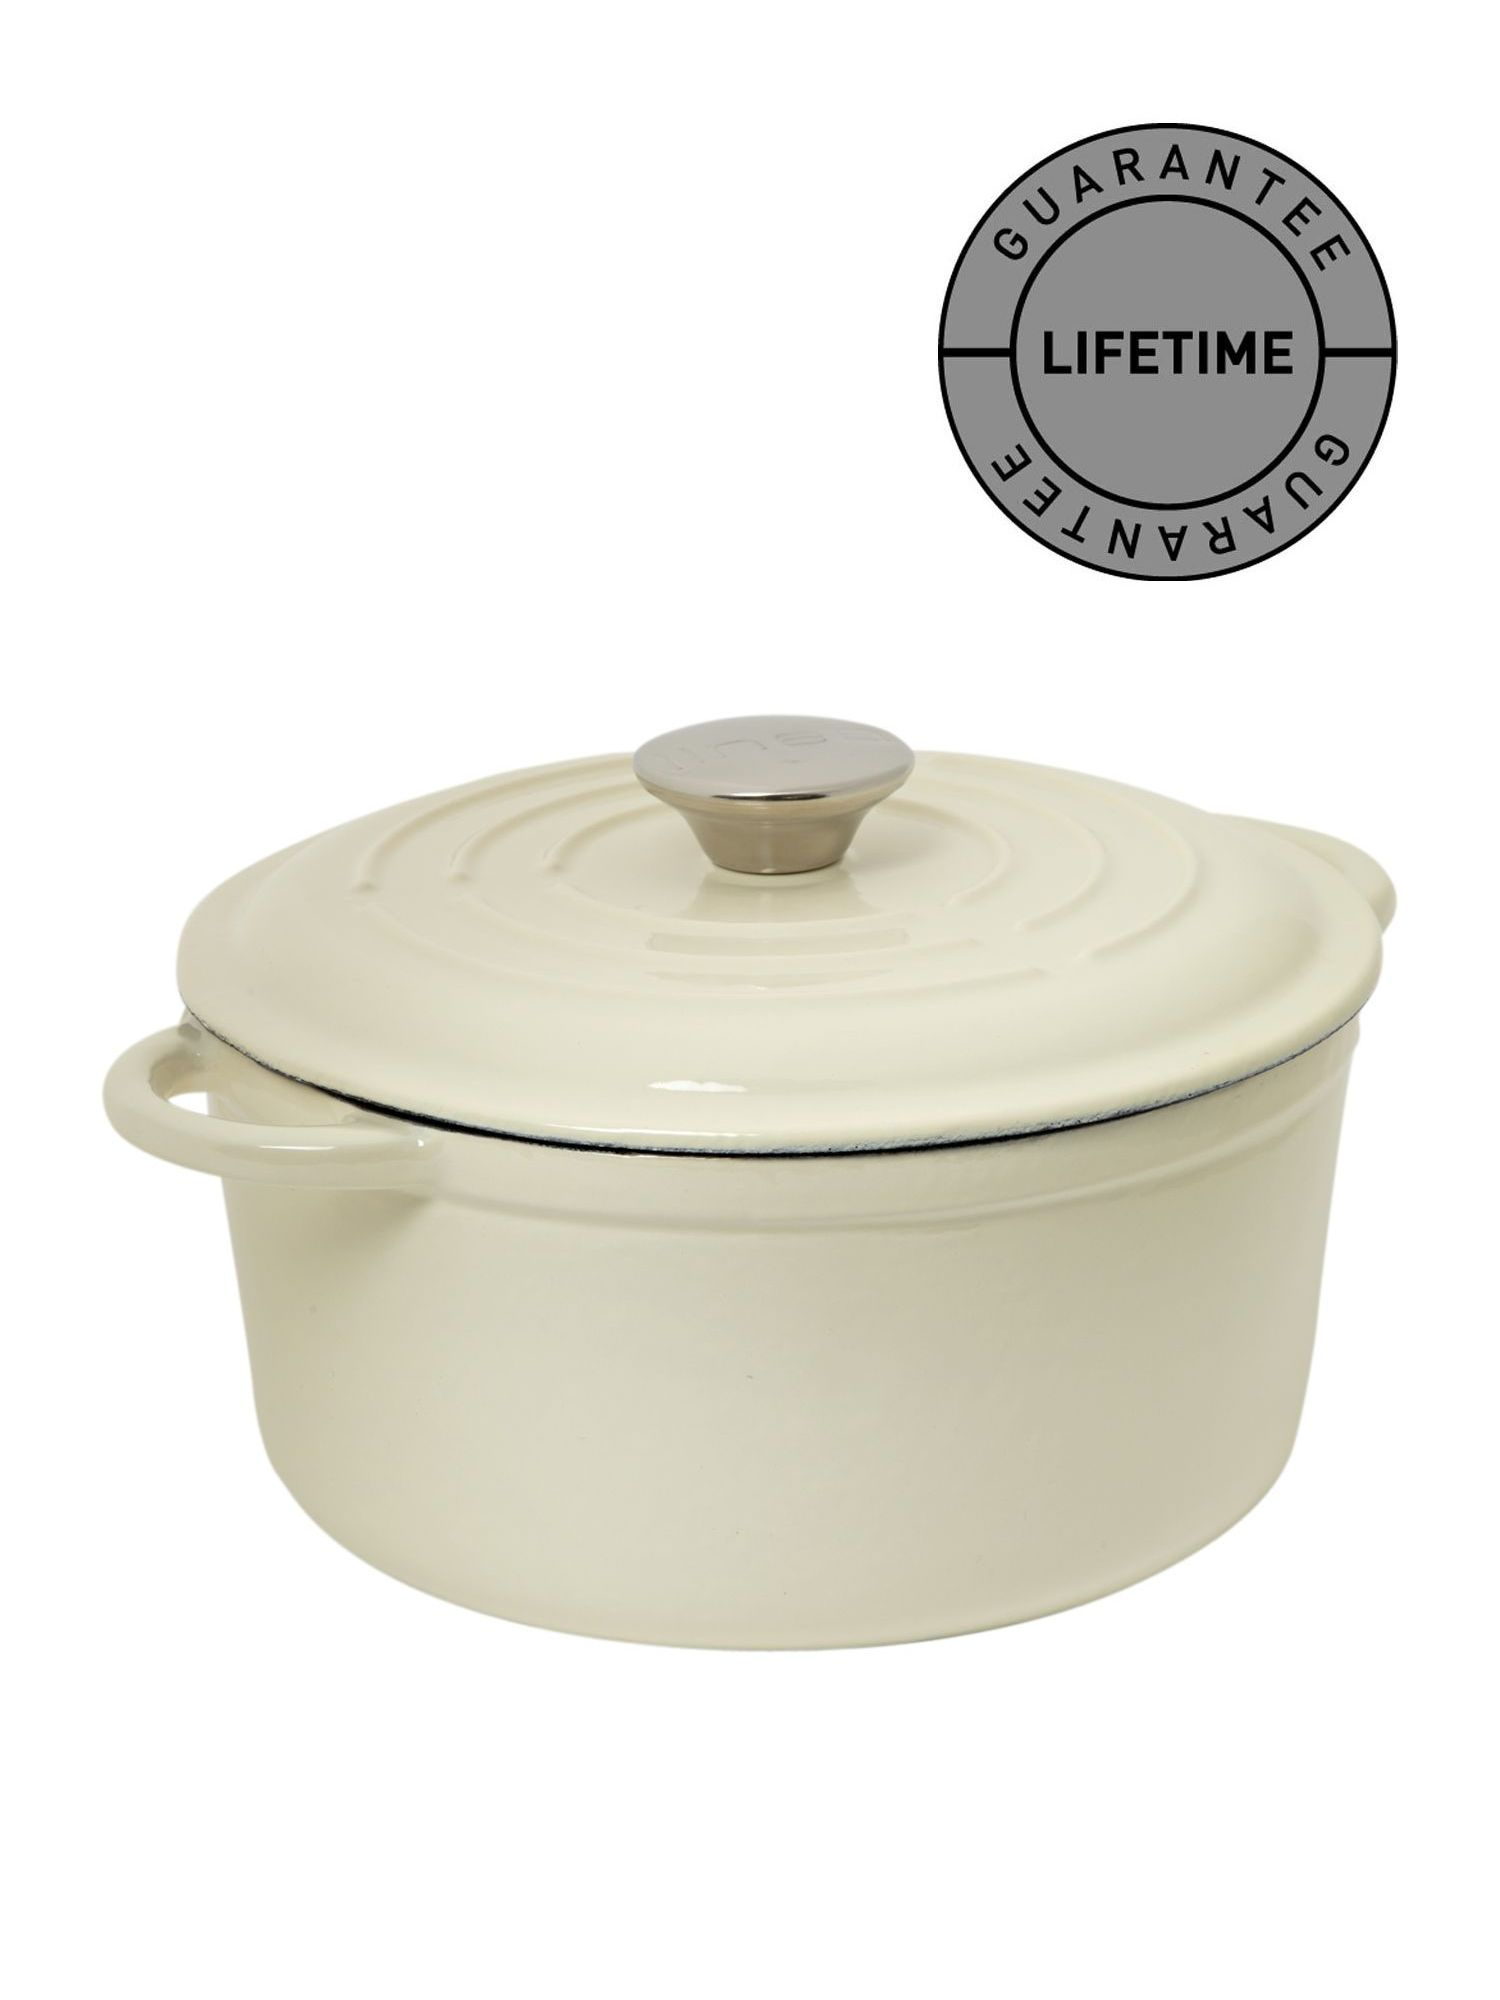 Cream cast iron round casserole, 21cm